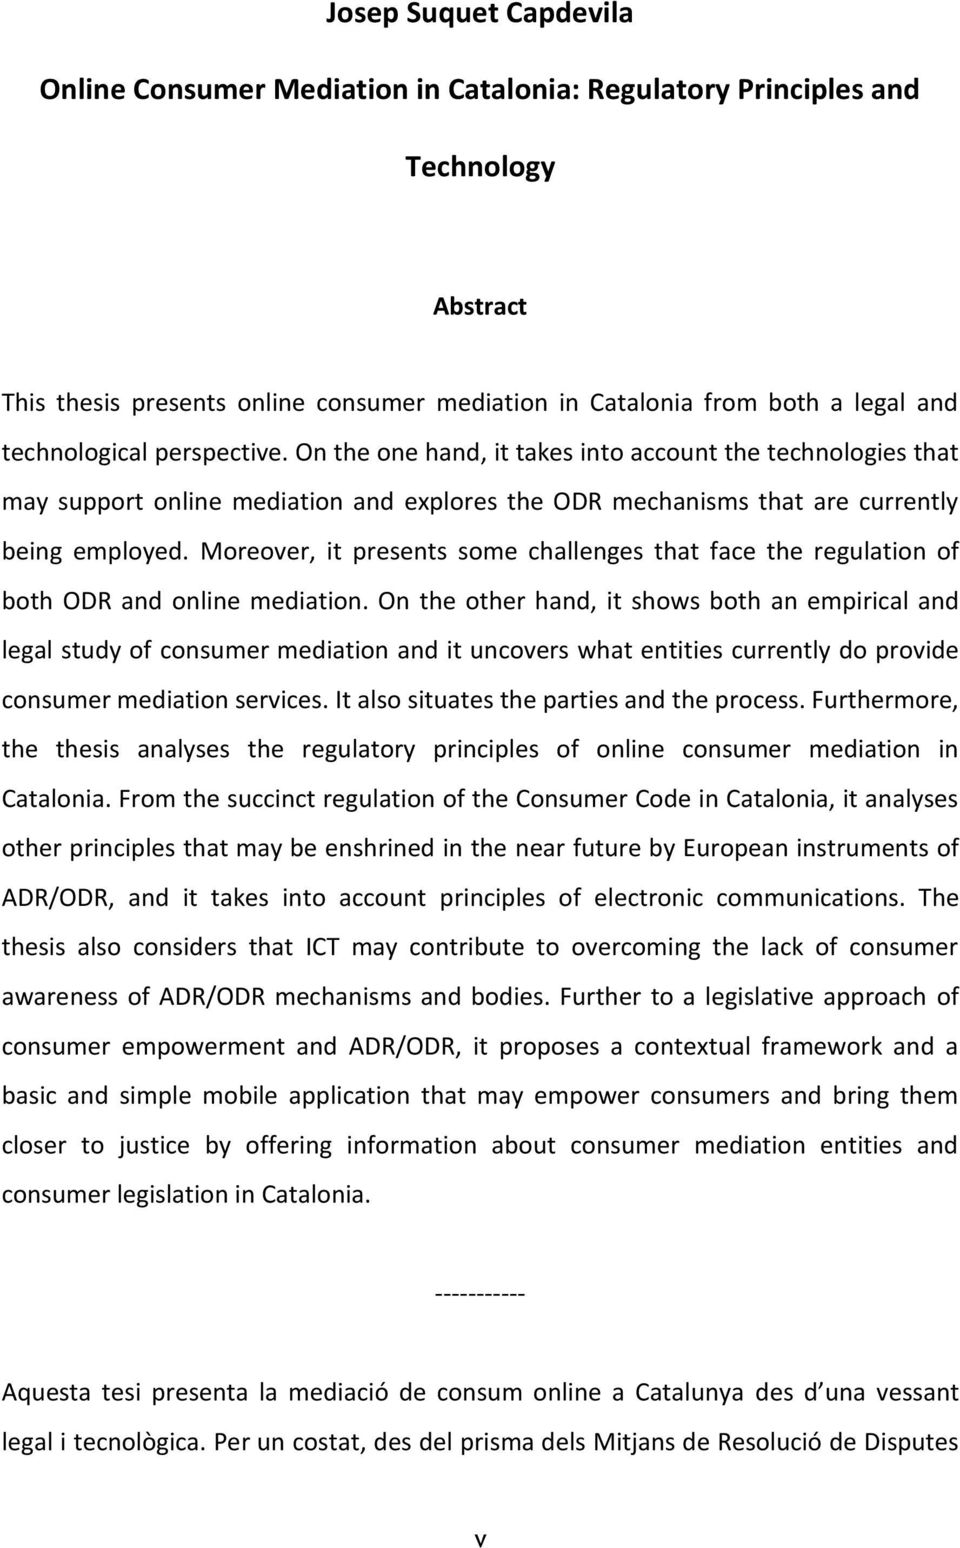 Moreover, it presents some challenges that face the regulation of both ODR and online mediation.